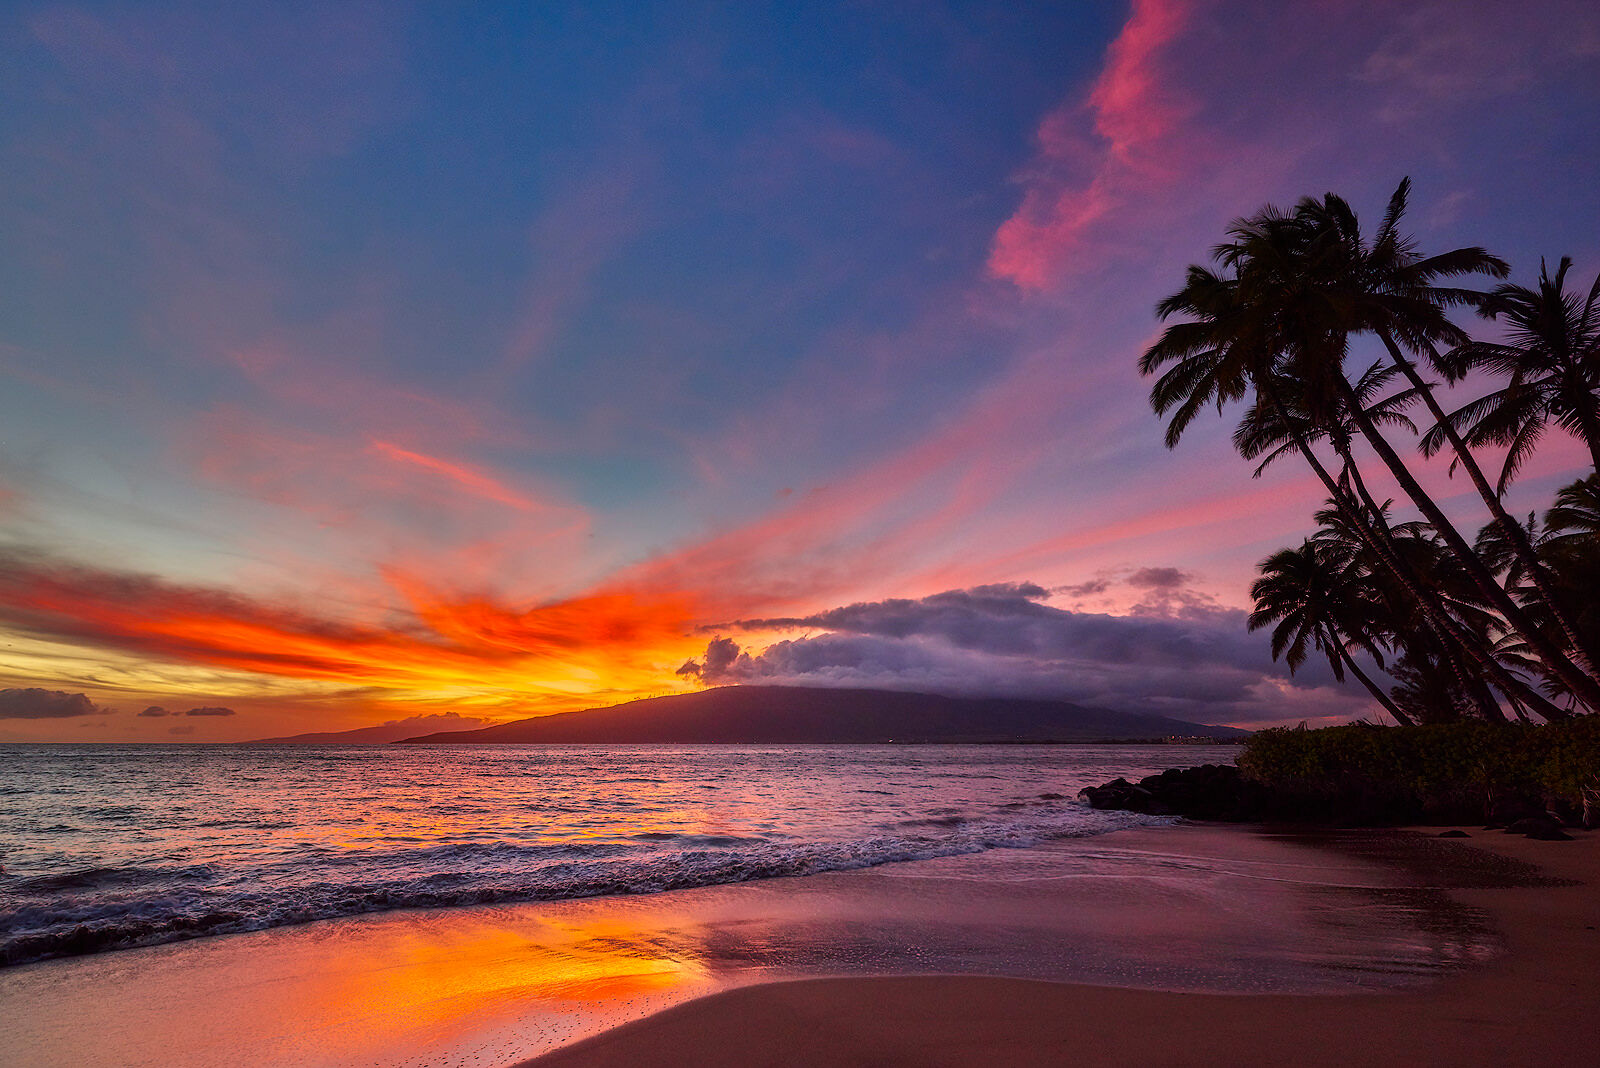 a vibrant sunset with pink, purple, and orange colors and west Maui in the background as seen from North Kihei.  Photographed by Andrew Shoemaker